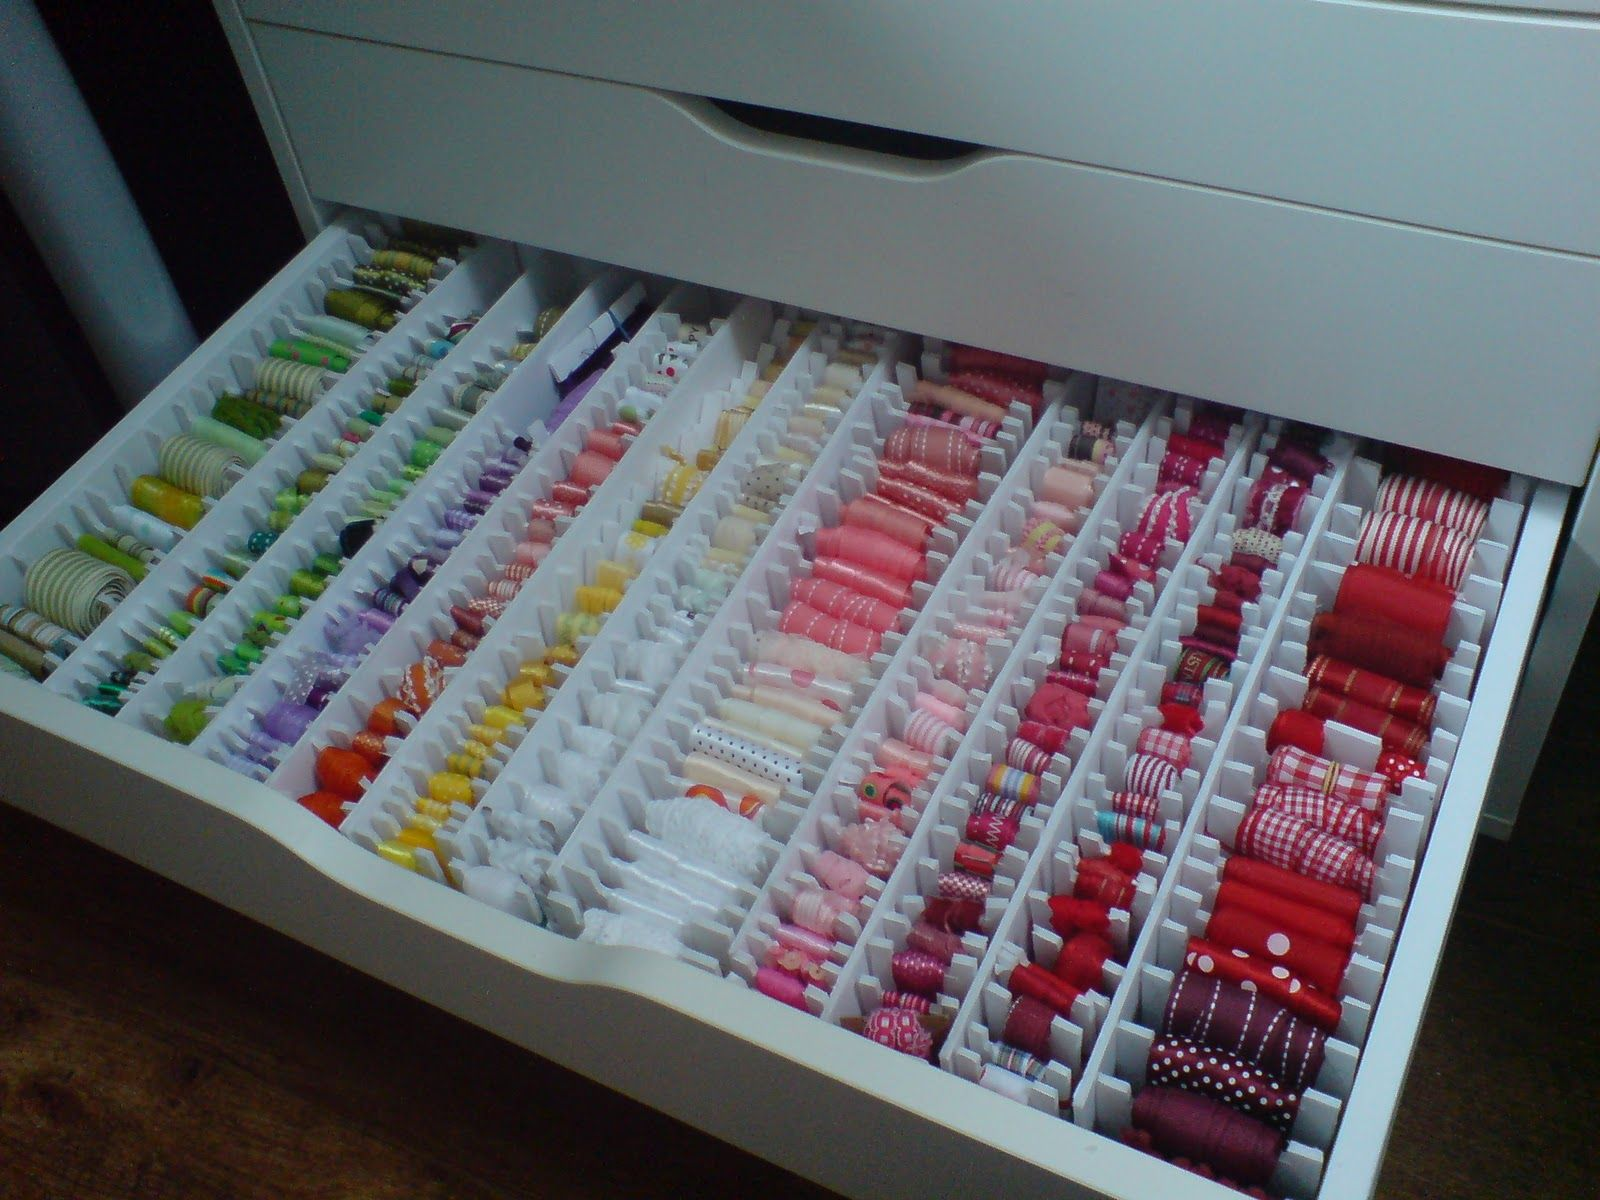 Foam board craft ideas - Inexpensive Sewing And Craft Room Storage Idea Ikea Drawers Alex With Foam Board For Ribbon Drawers Many Styles And Shapes Available At Ikea